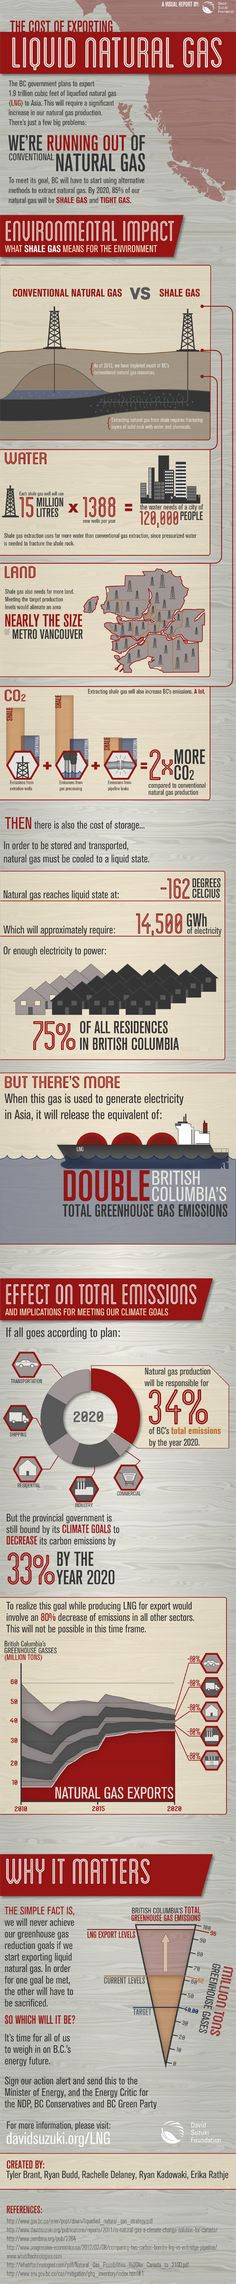 An infographic explaining British Columbia's liquified natural gas issue. Find it on the David Suzuki website here: http://ow.ly/fRj9Q